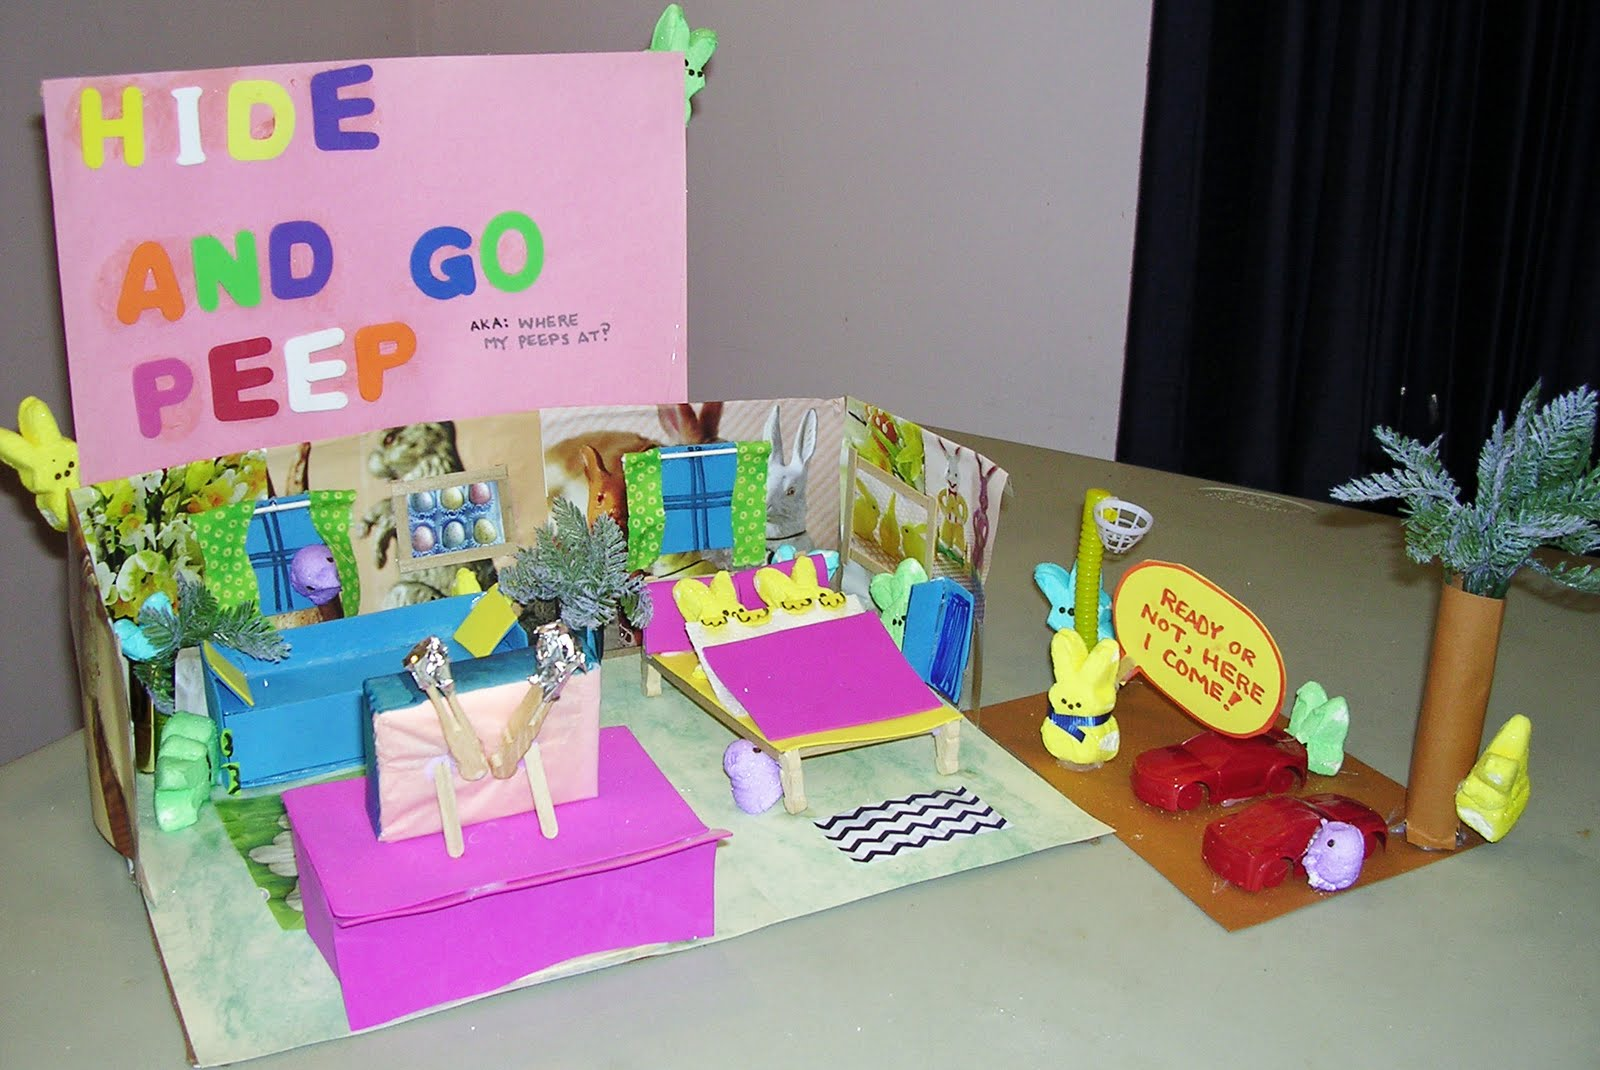 "Here are several photos of the Studio In-Sight/Crafts entries into the  Washington Post Peeps Show contest. ""HIDE AND GO PEEP; AKA WHERE MY PEEPS  AT?"""